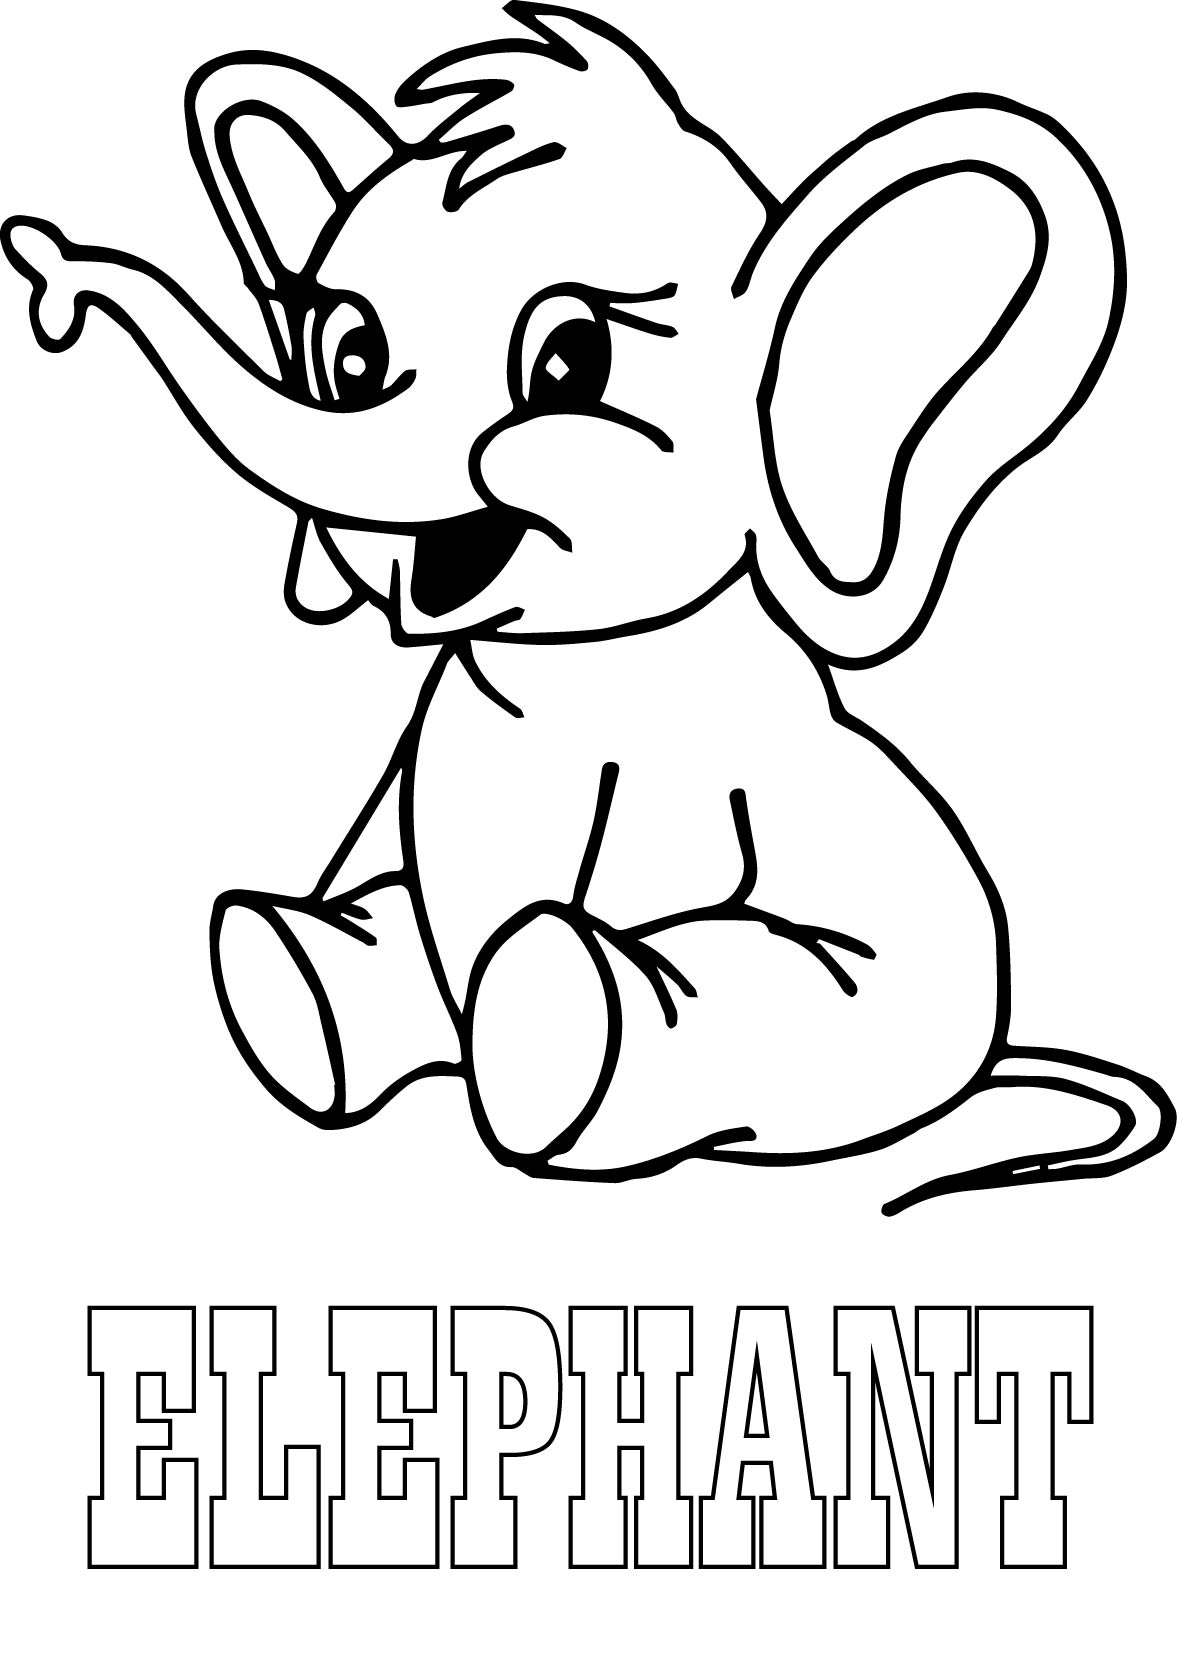 Elephant and text coloring page for Elephant coloring pages